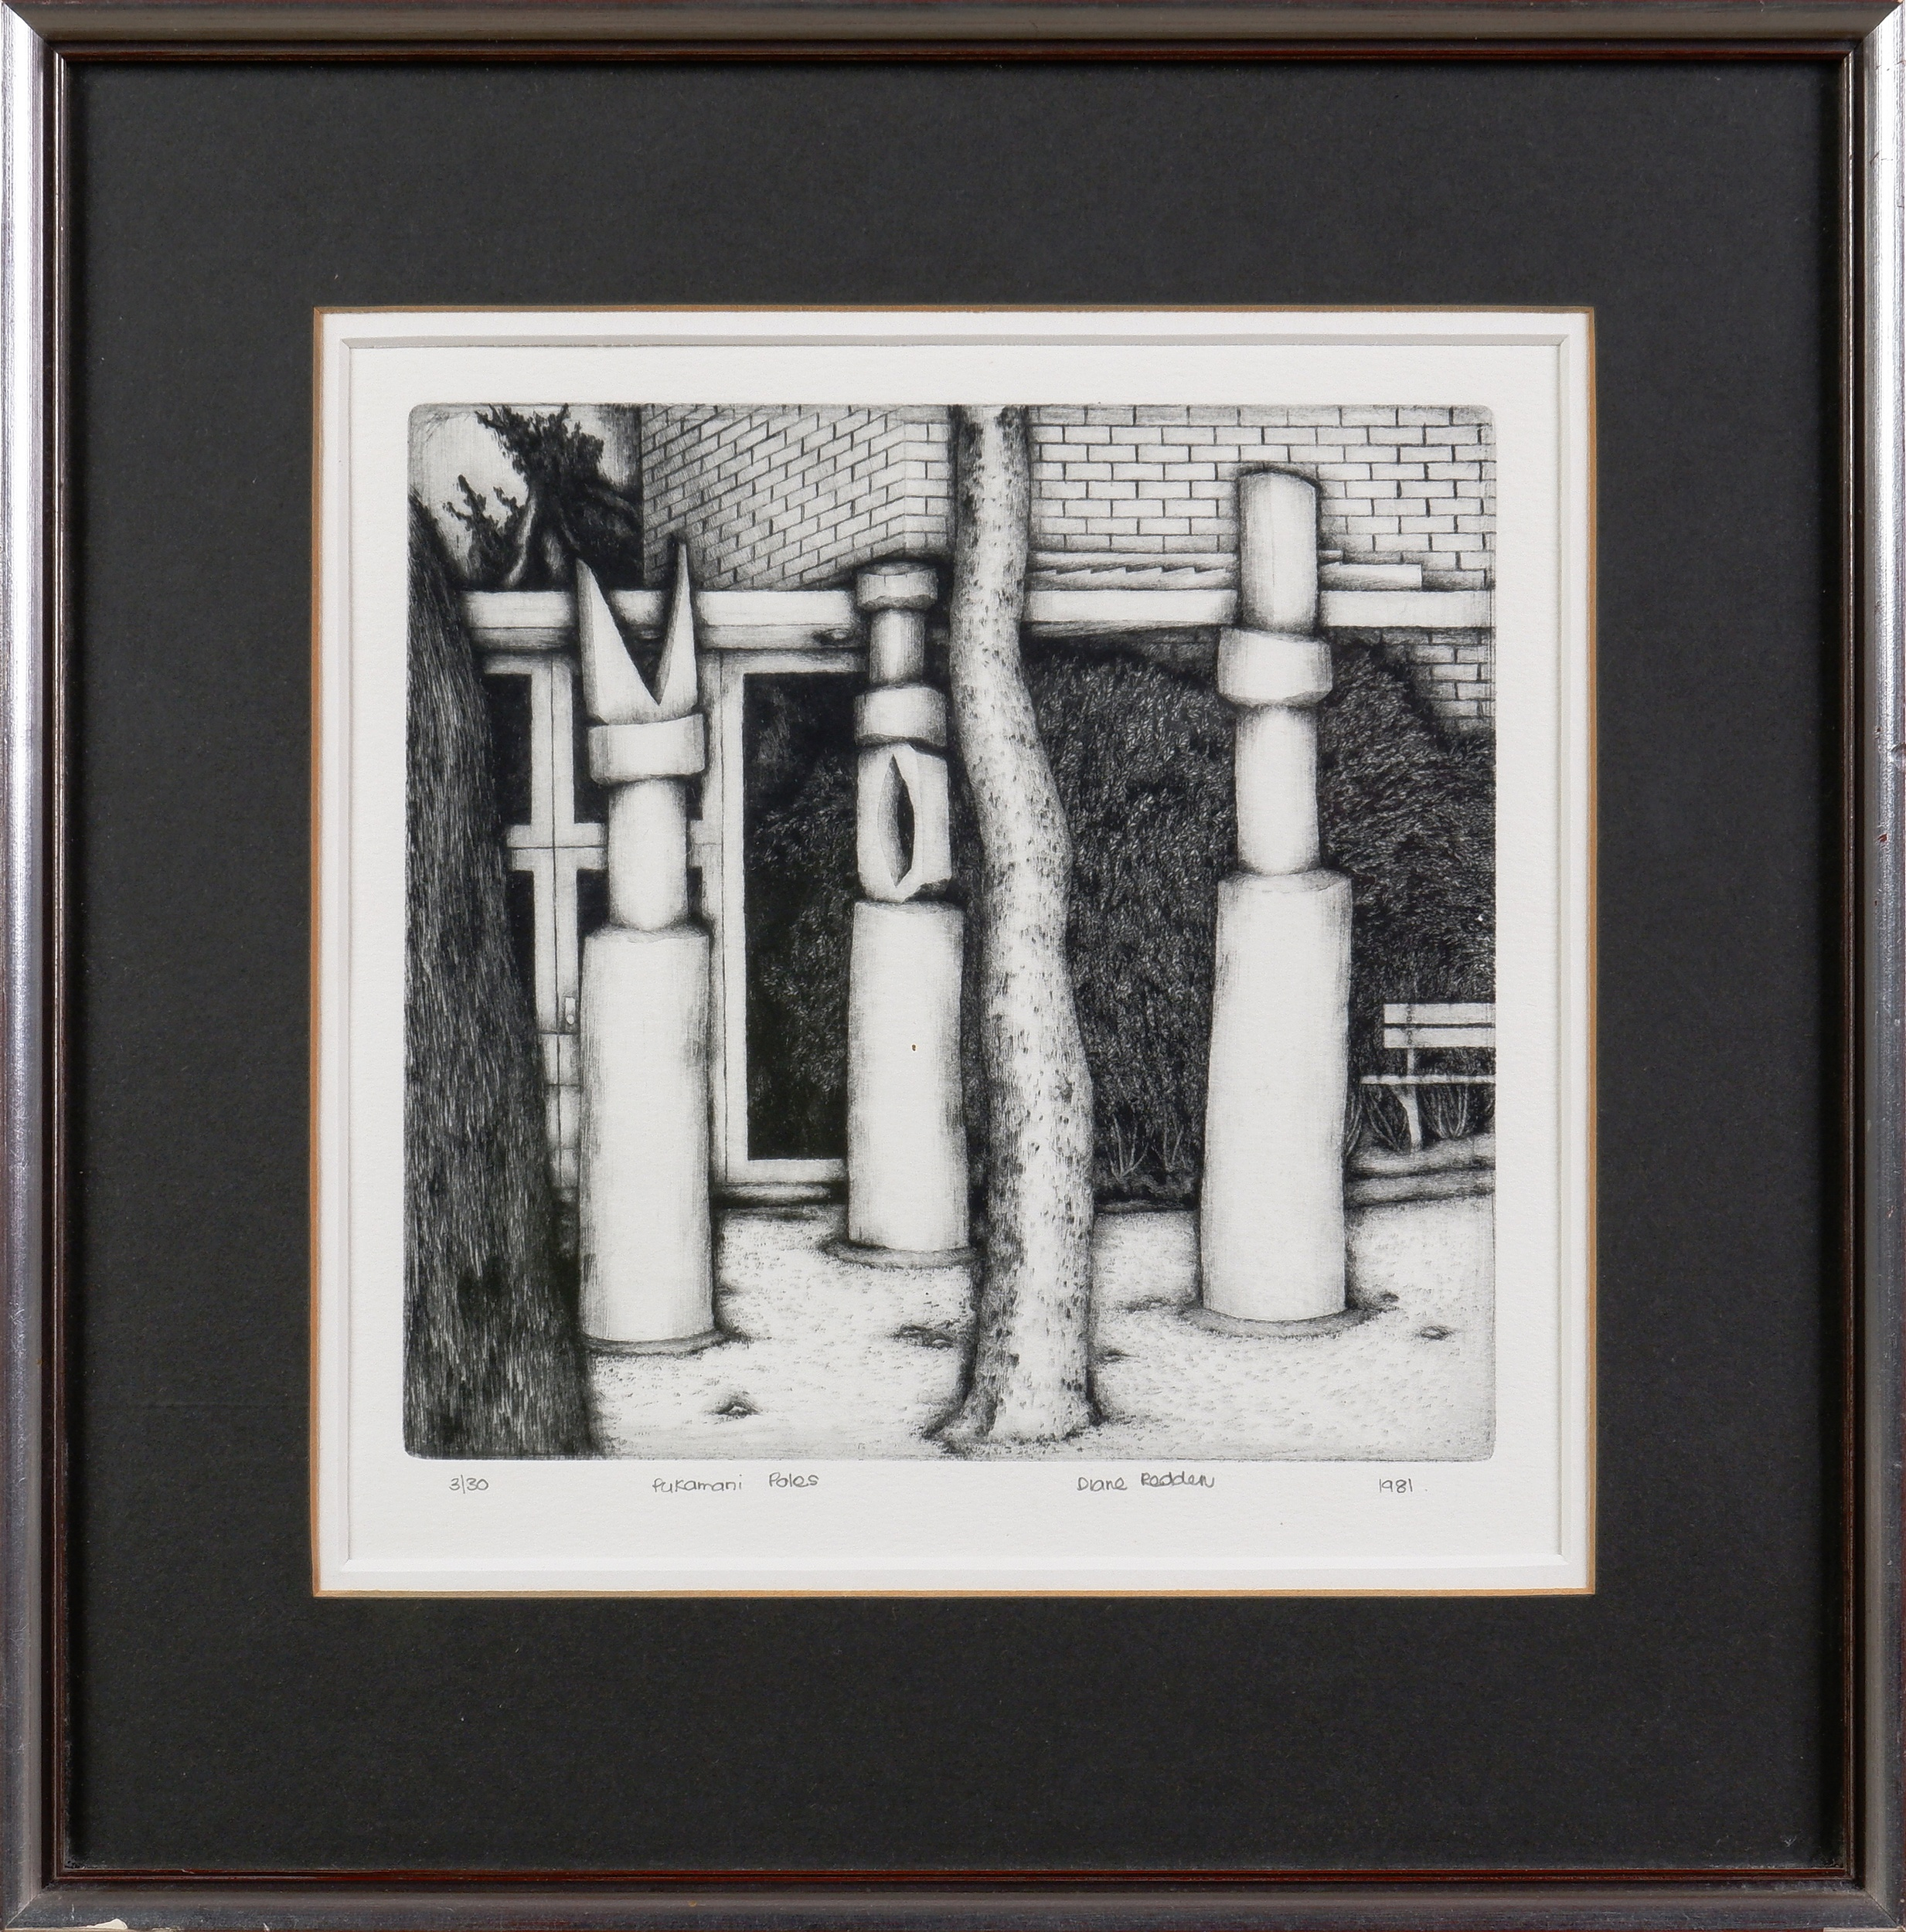 'Diane Redden (20th Century, Australian), Pukamani Poles 1981, Etching and Drypoint Edition 3/30,18 x 18 cm (image size)'